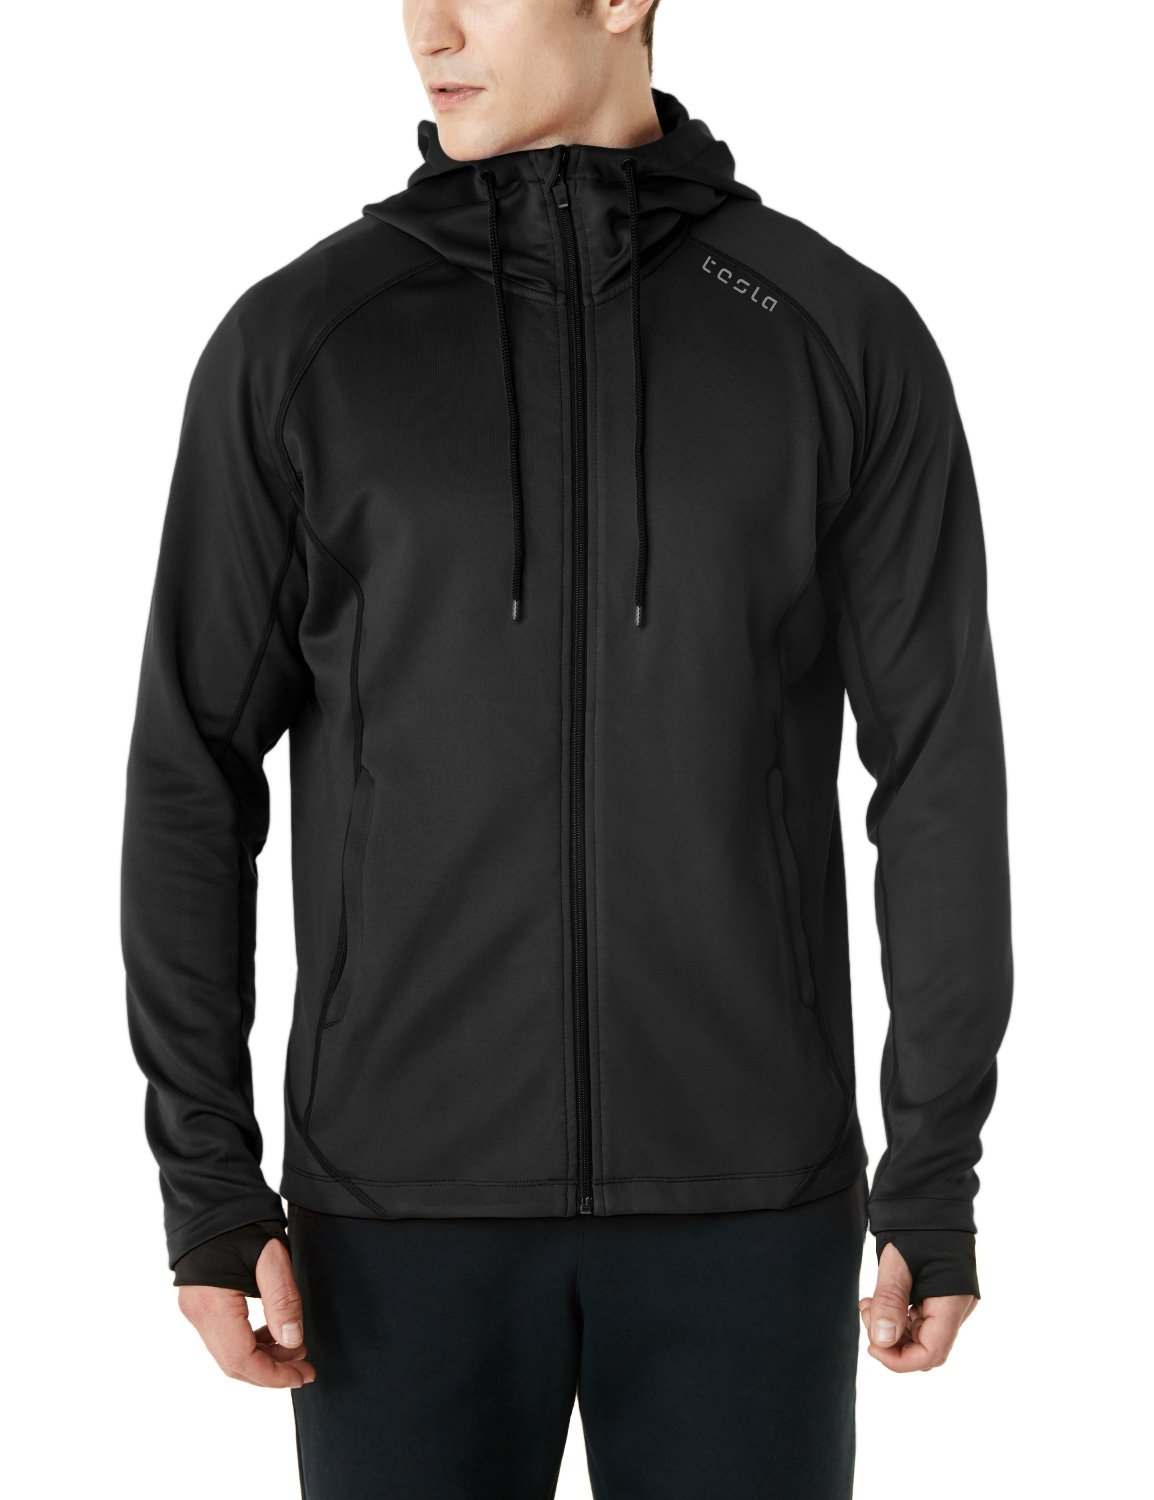 Tesla TM-MKJ03-BLK_2X-Large Men's Performance Active Training Full-zip Hoodie Jacket MKJ03 by Tesla